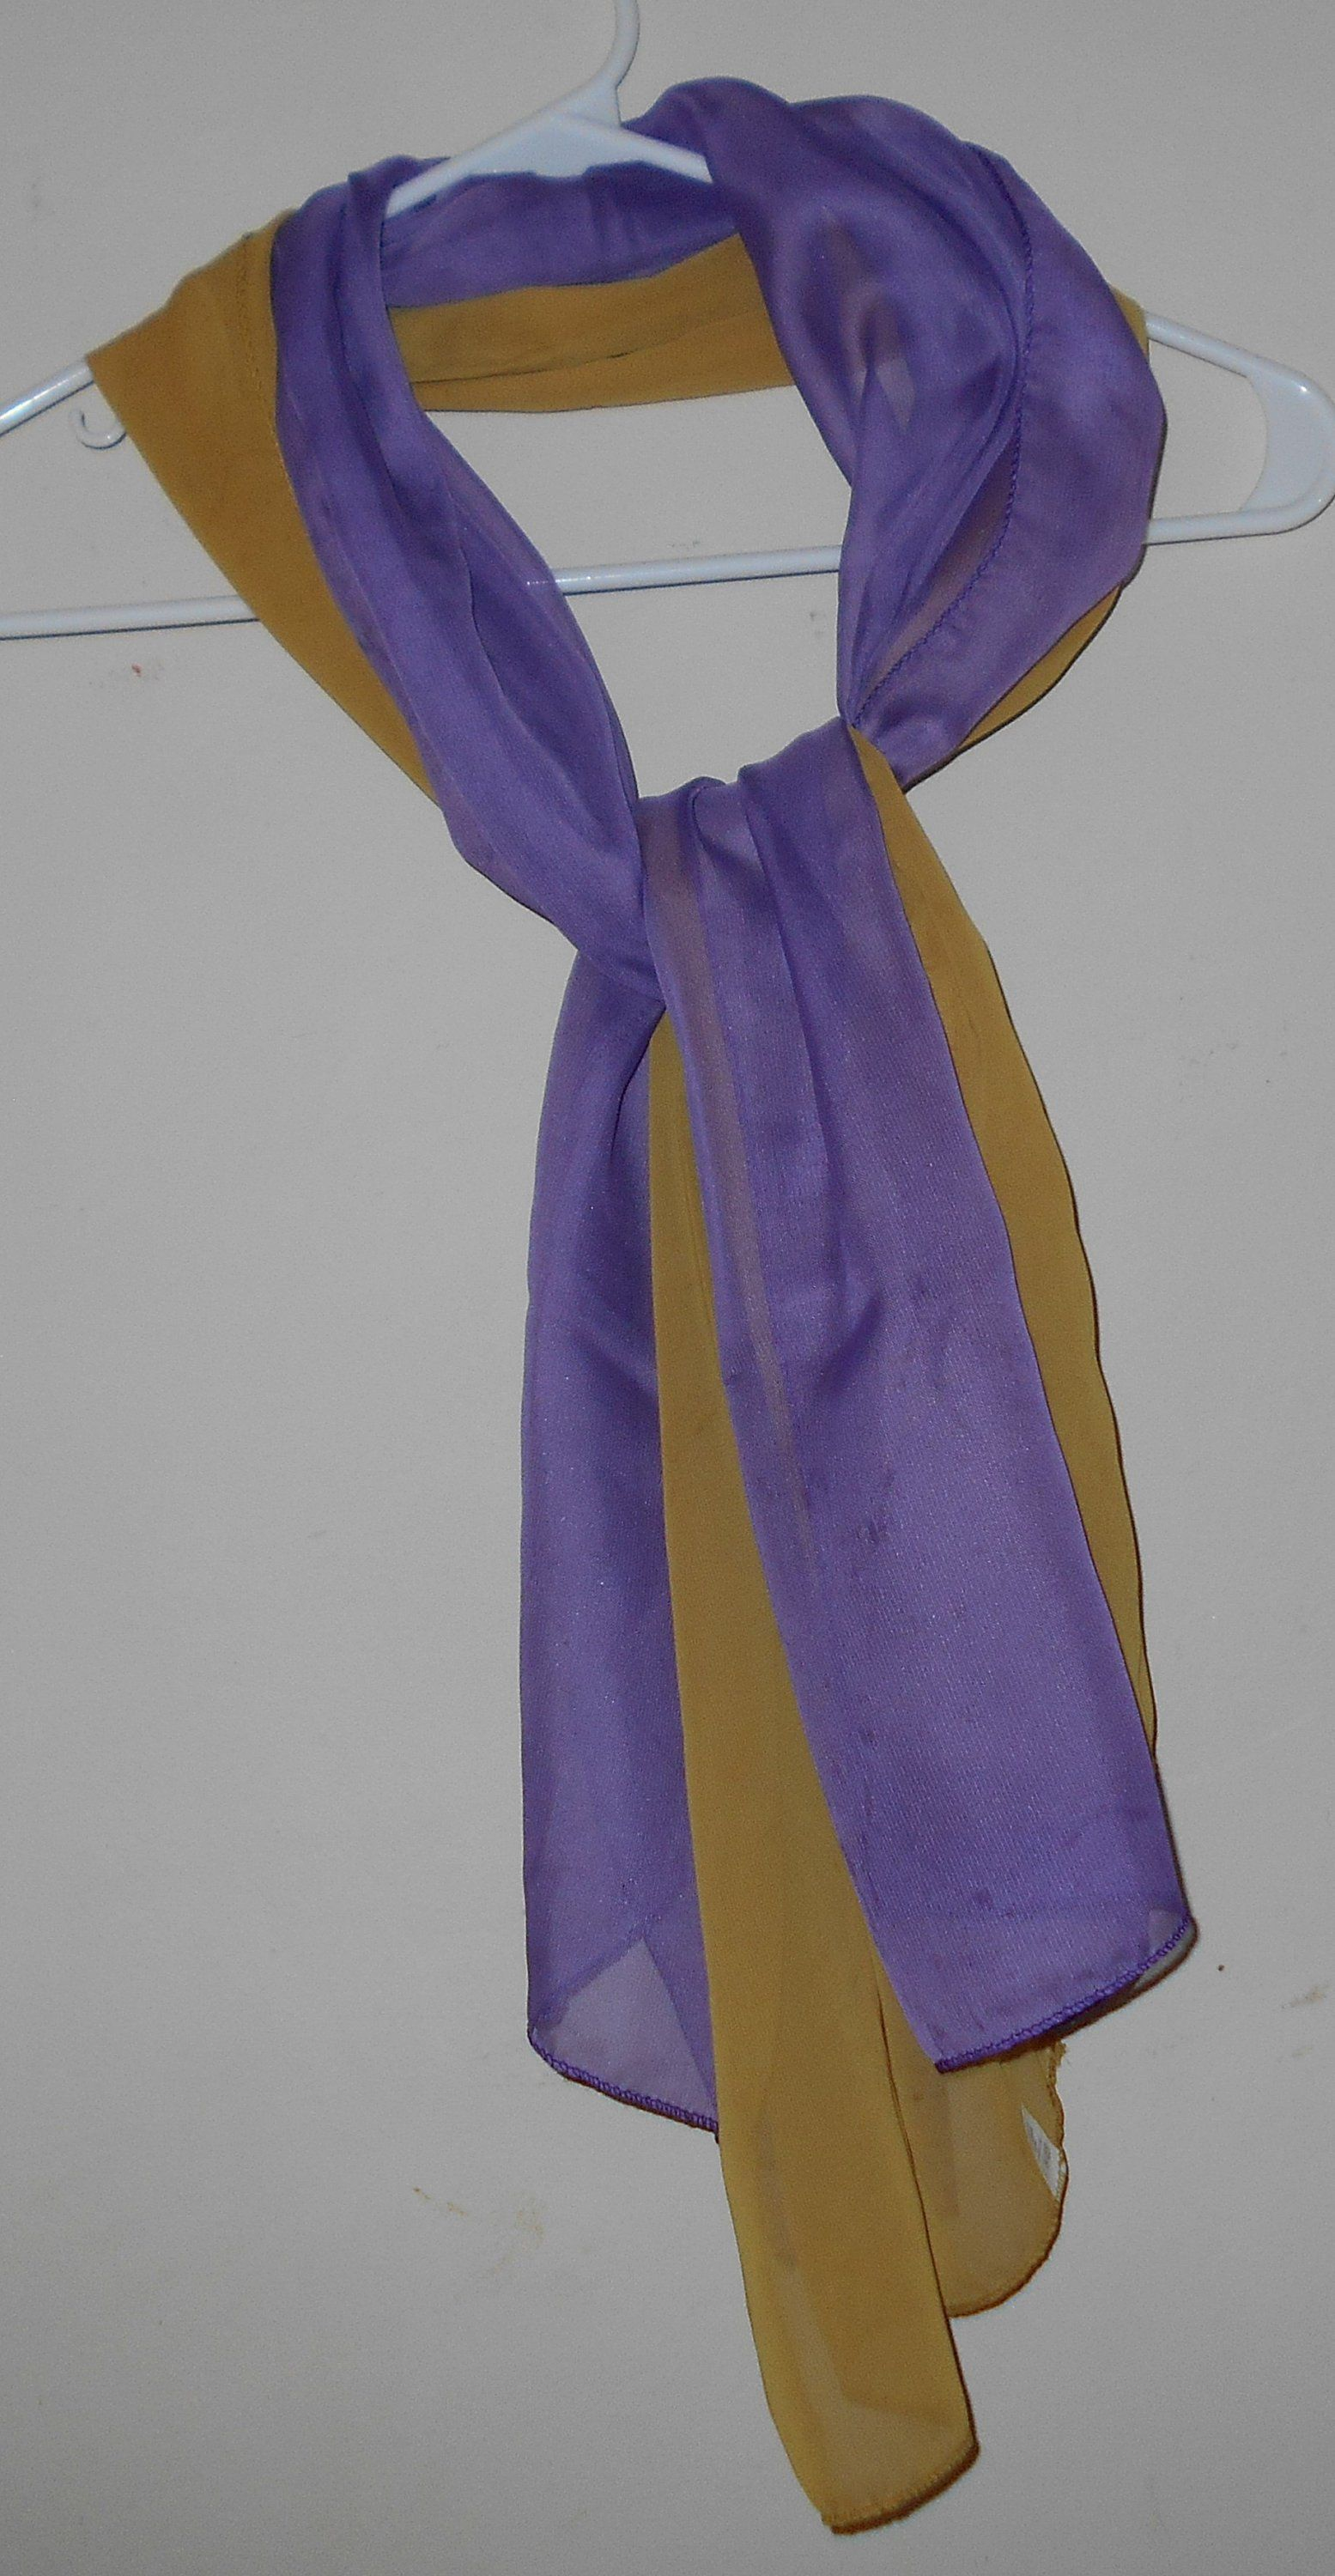 f41e27a6bbfeb Vintage nylon scarves in purple and mustard 1980s fashion scarf in ...